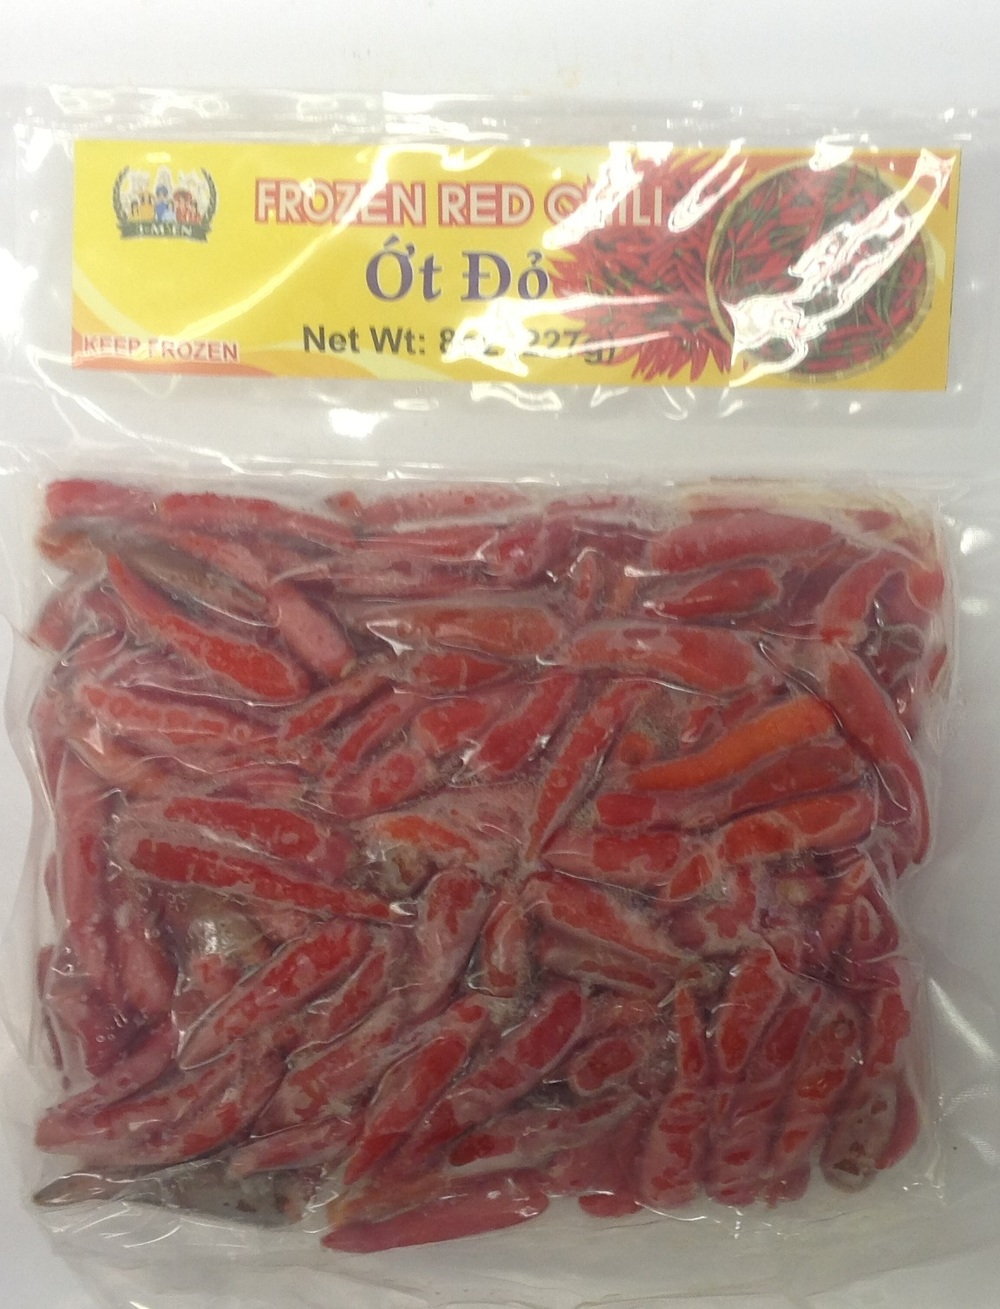 Frozen Red Chili   V.N.   FZV1316 50x8 oz